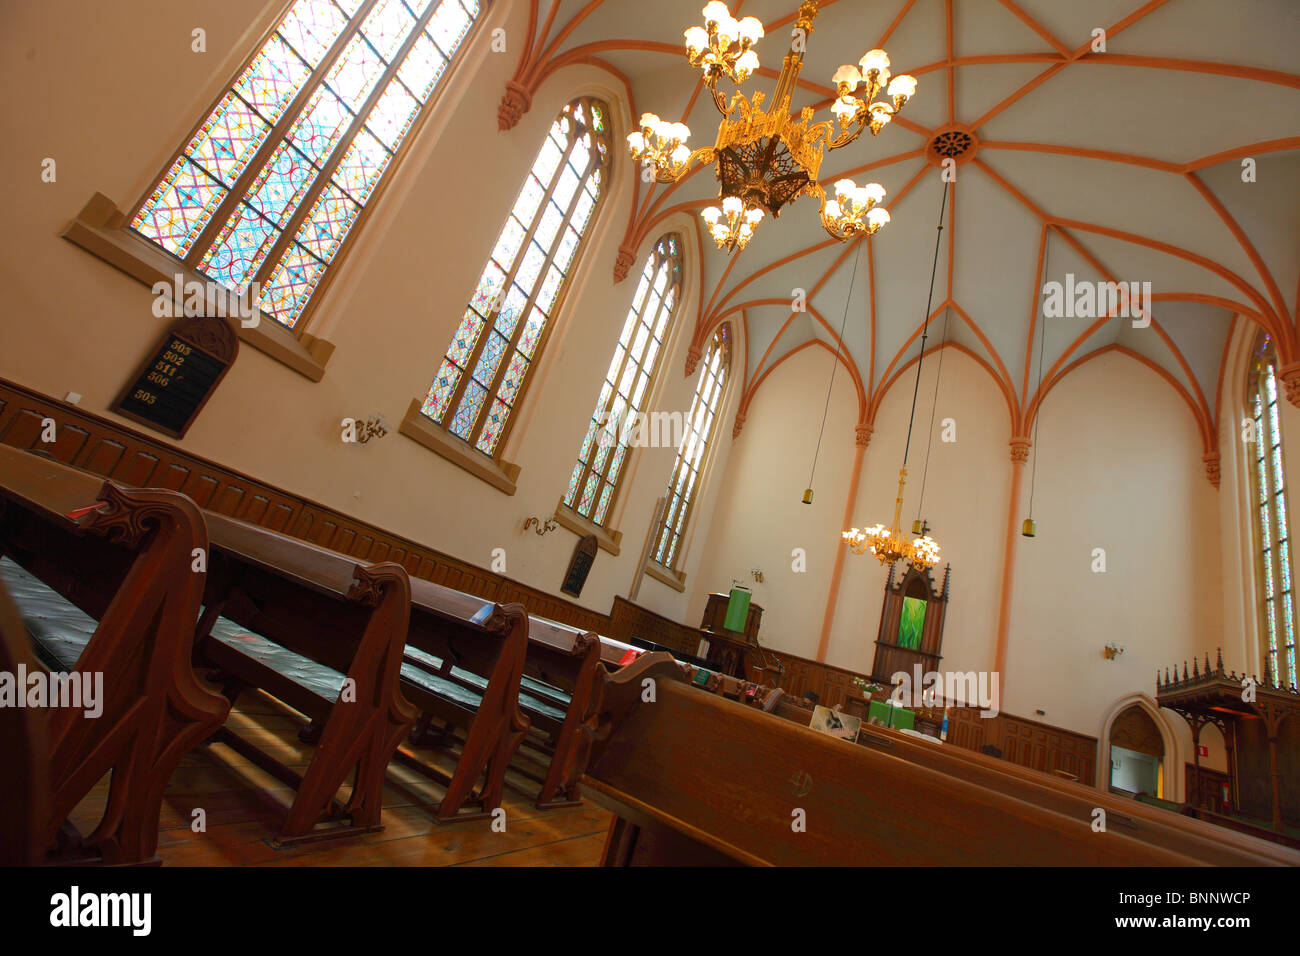 Glas Den Haag.Interior Of German Church With Stained Glas The Hague Den